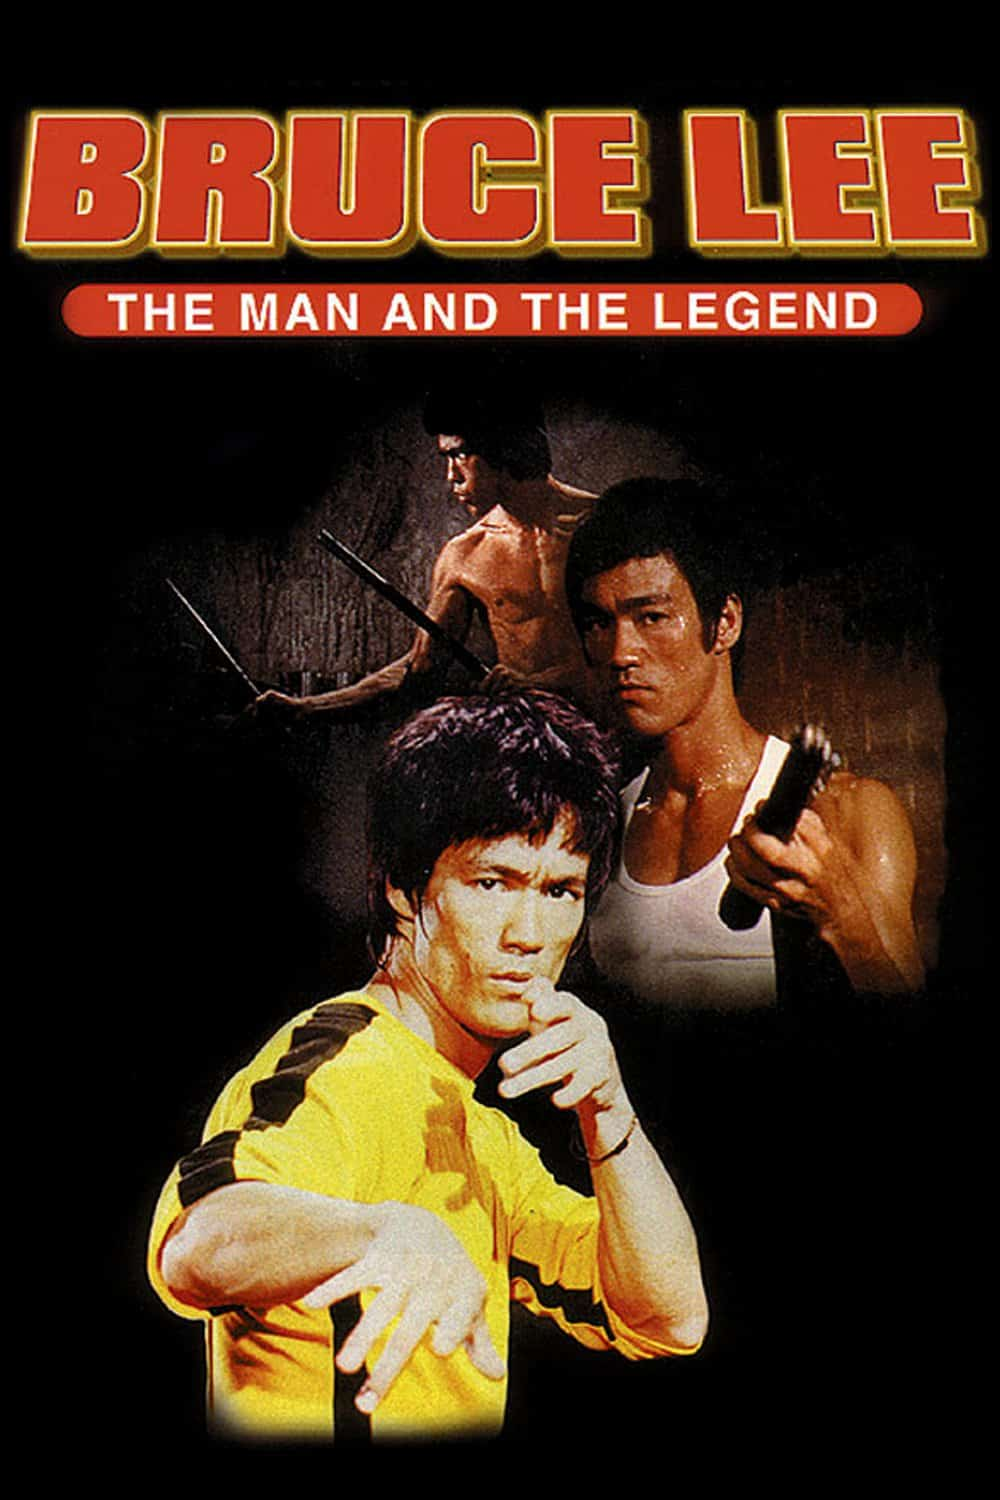 Bruce Lee, the Man and the Legend, 1973